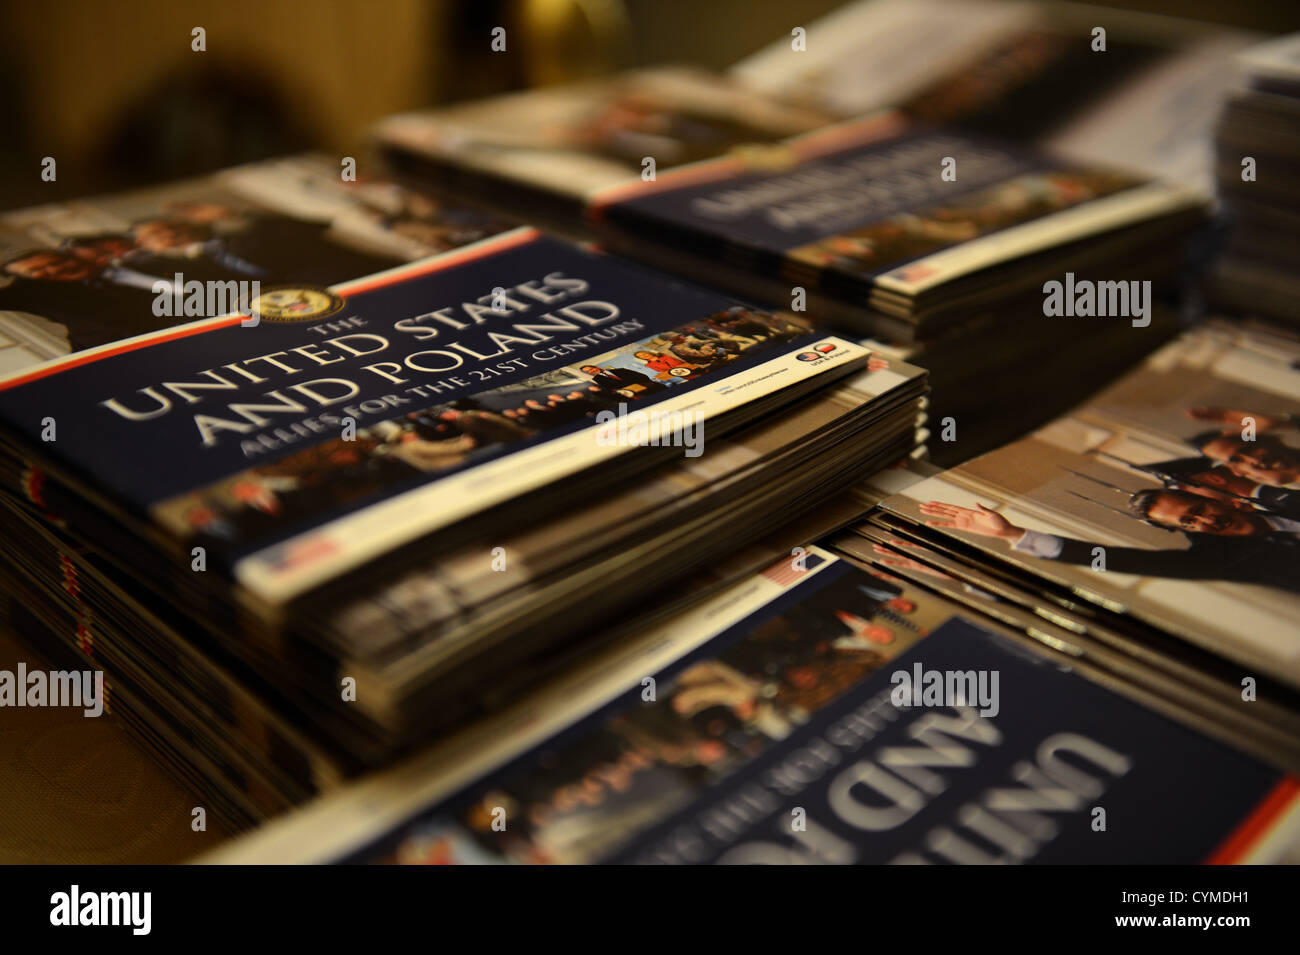 RADOM, Poland -- A stack of programs rest on a table during a United States Air Forces in Europe Concert Band performance - Stock Image